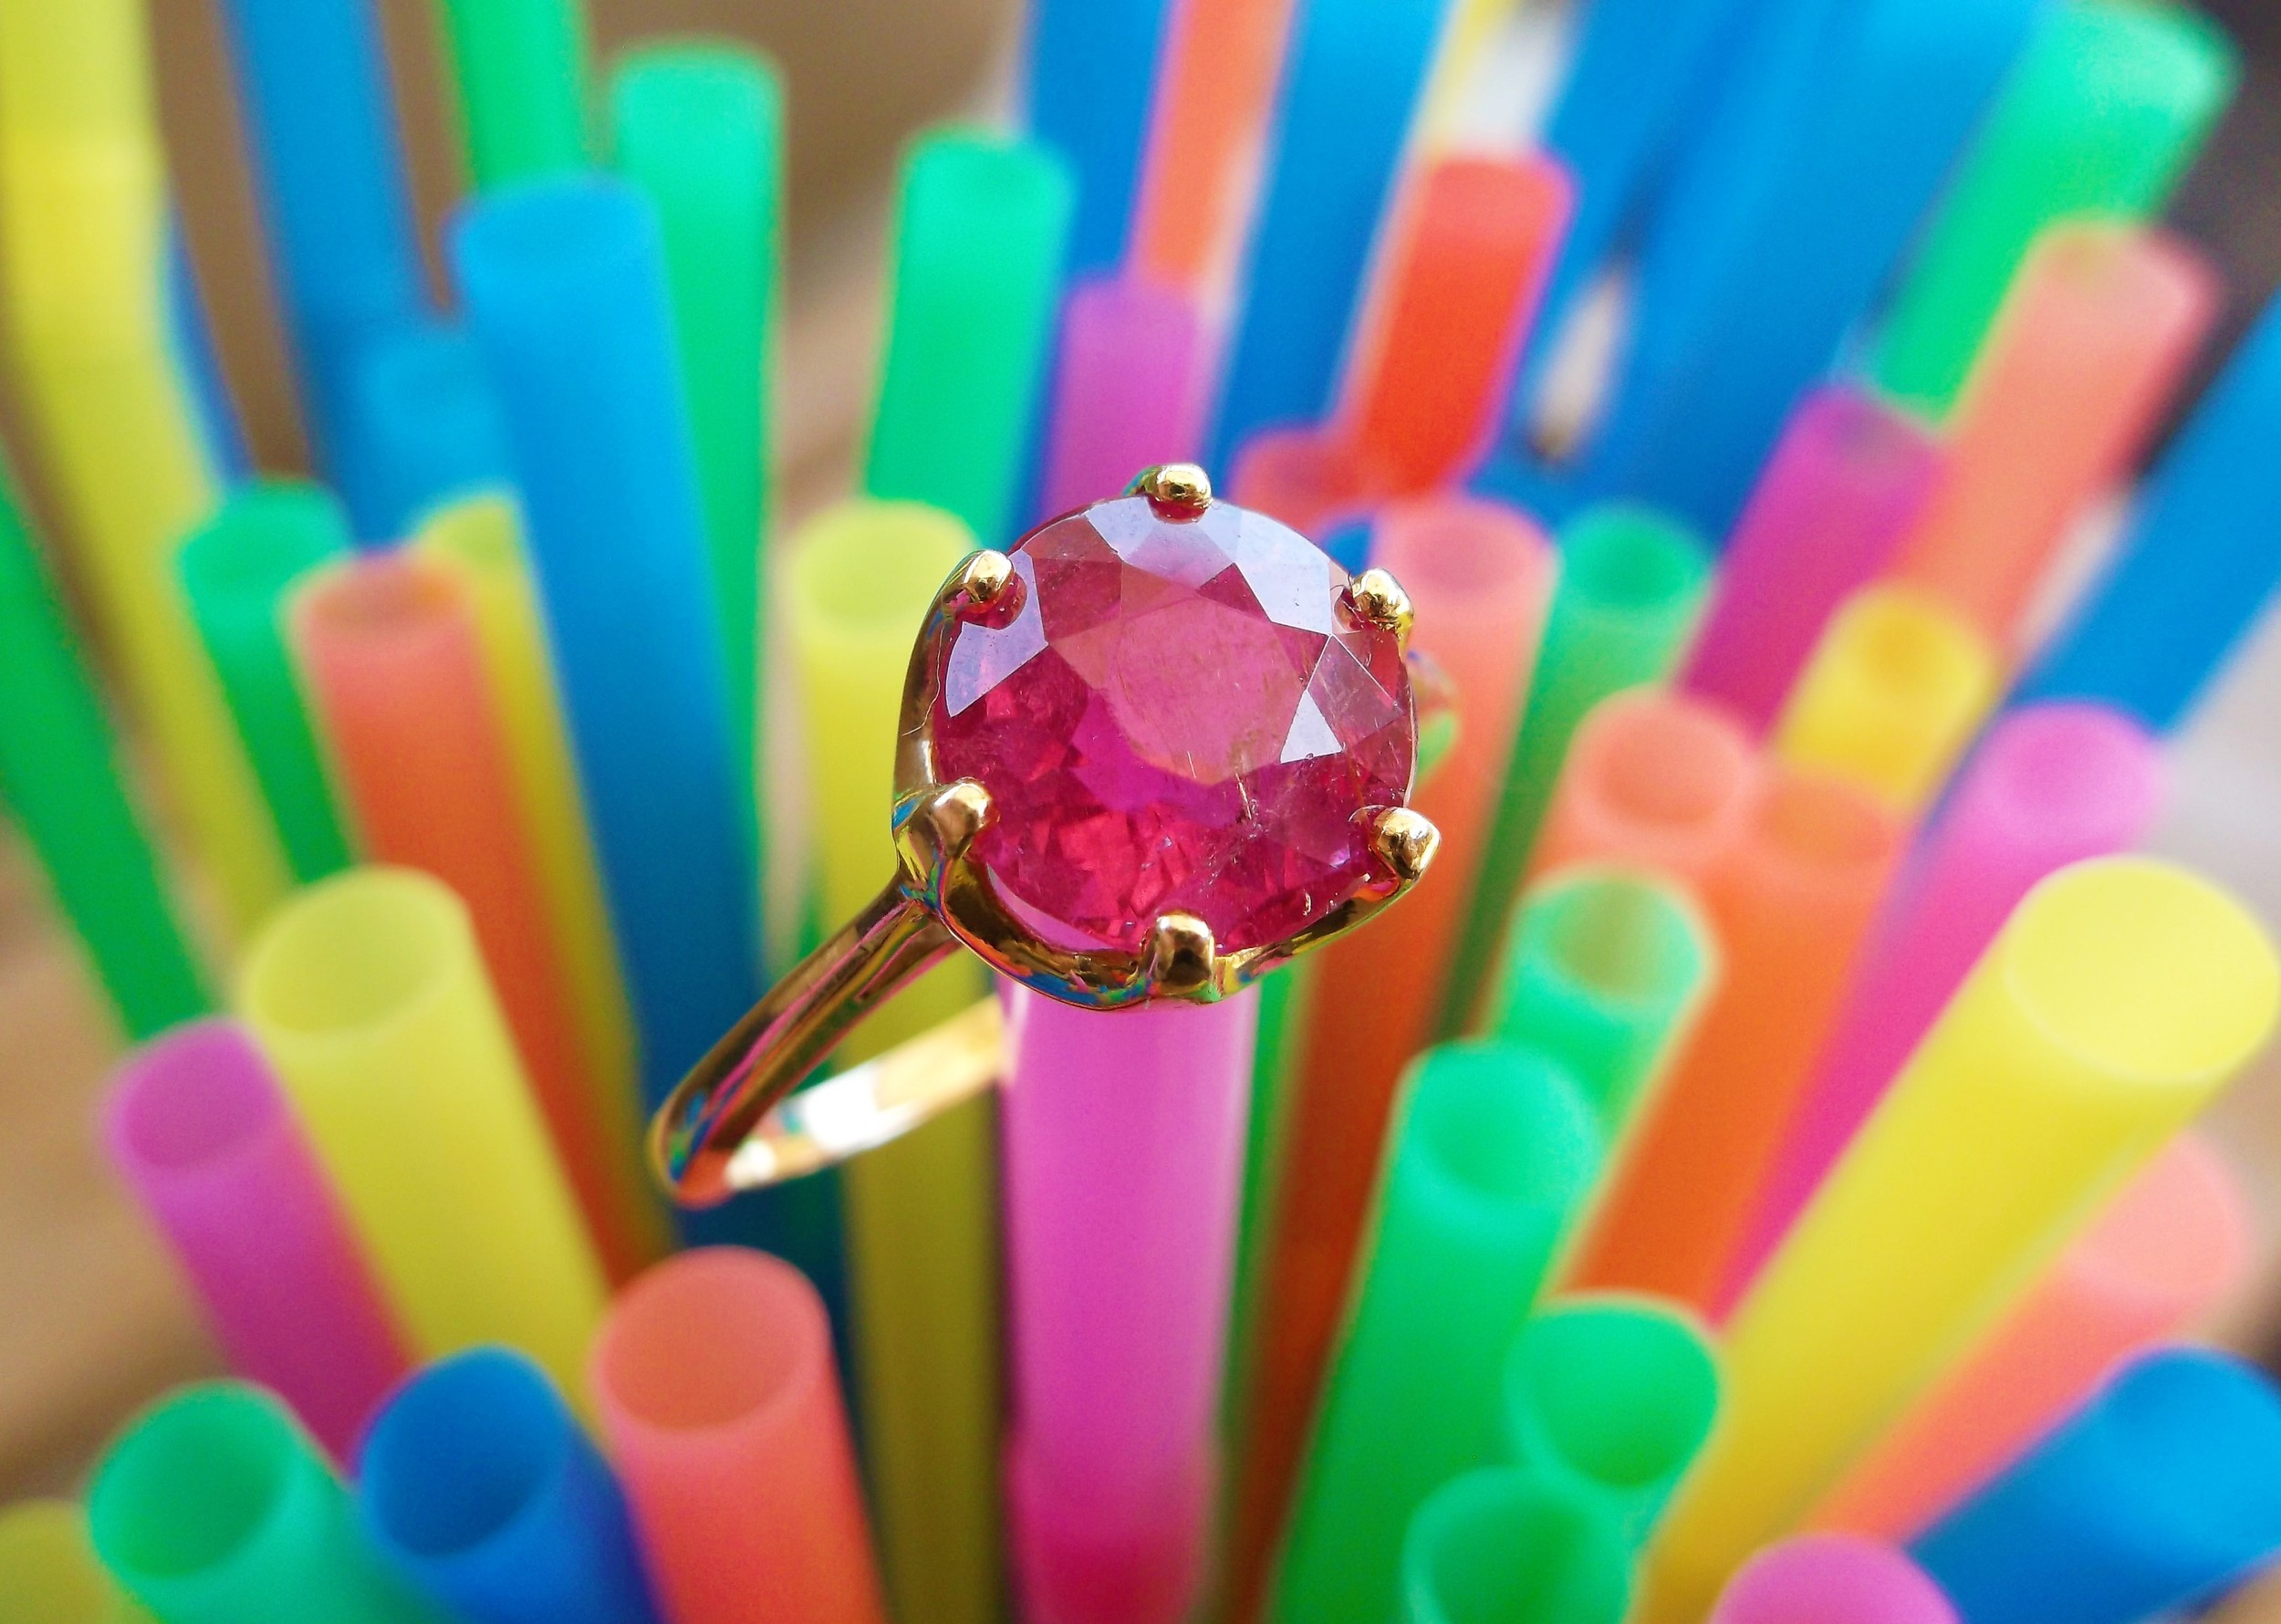 SOLD - Add a pop of pink to your day with this sweet 8.00 carat pink tourmaline set in 14K yellow gold.